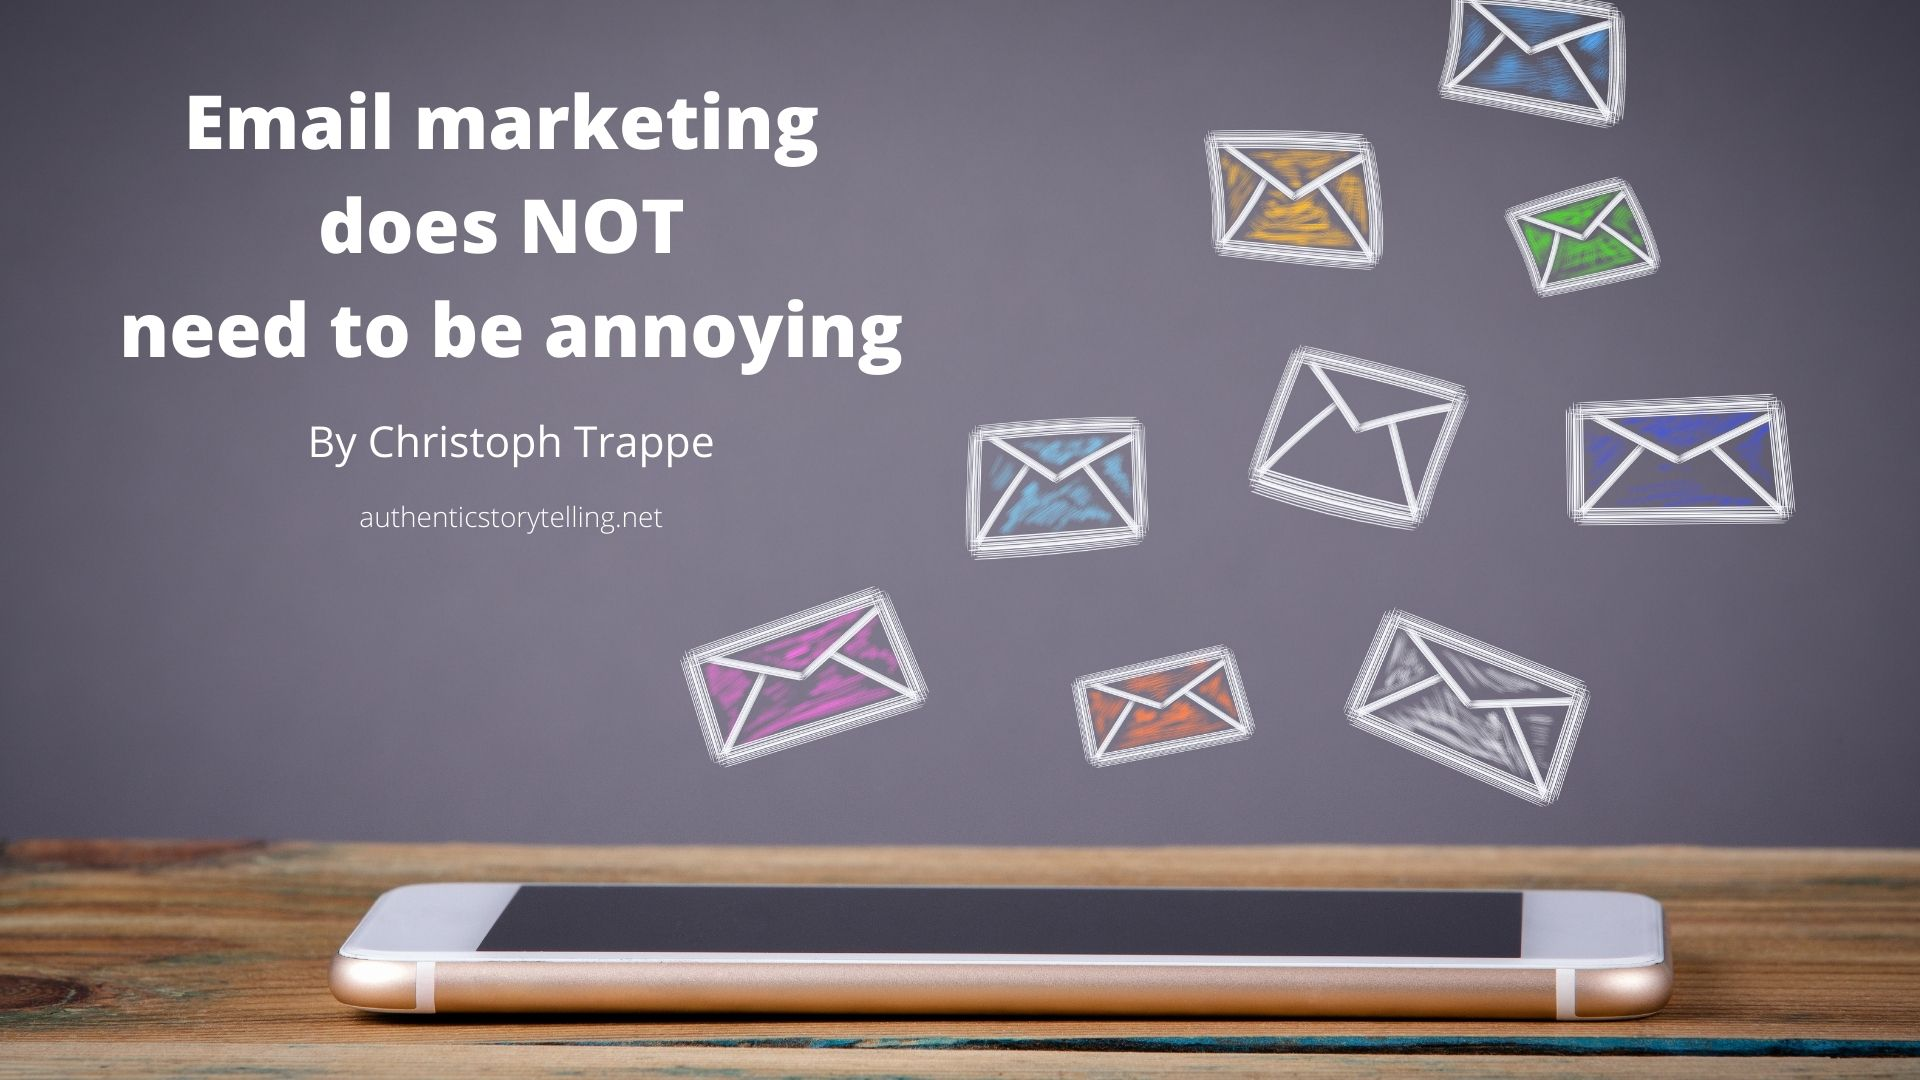 Email marketing does NOT need to be annoying